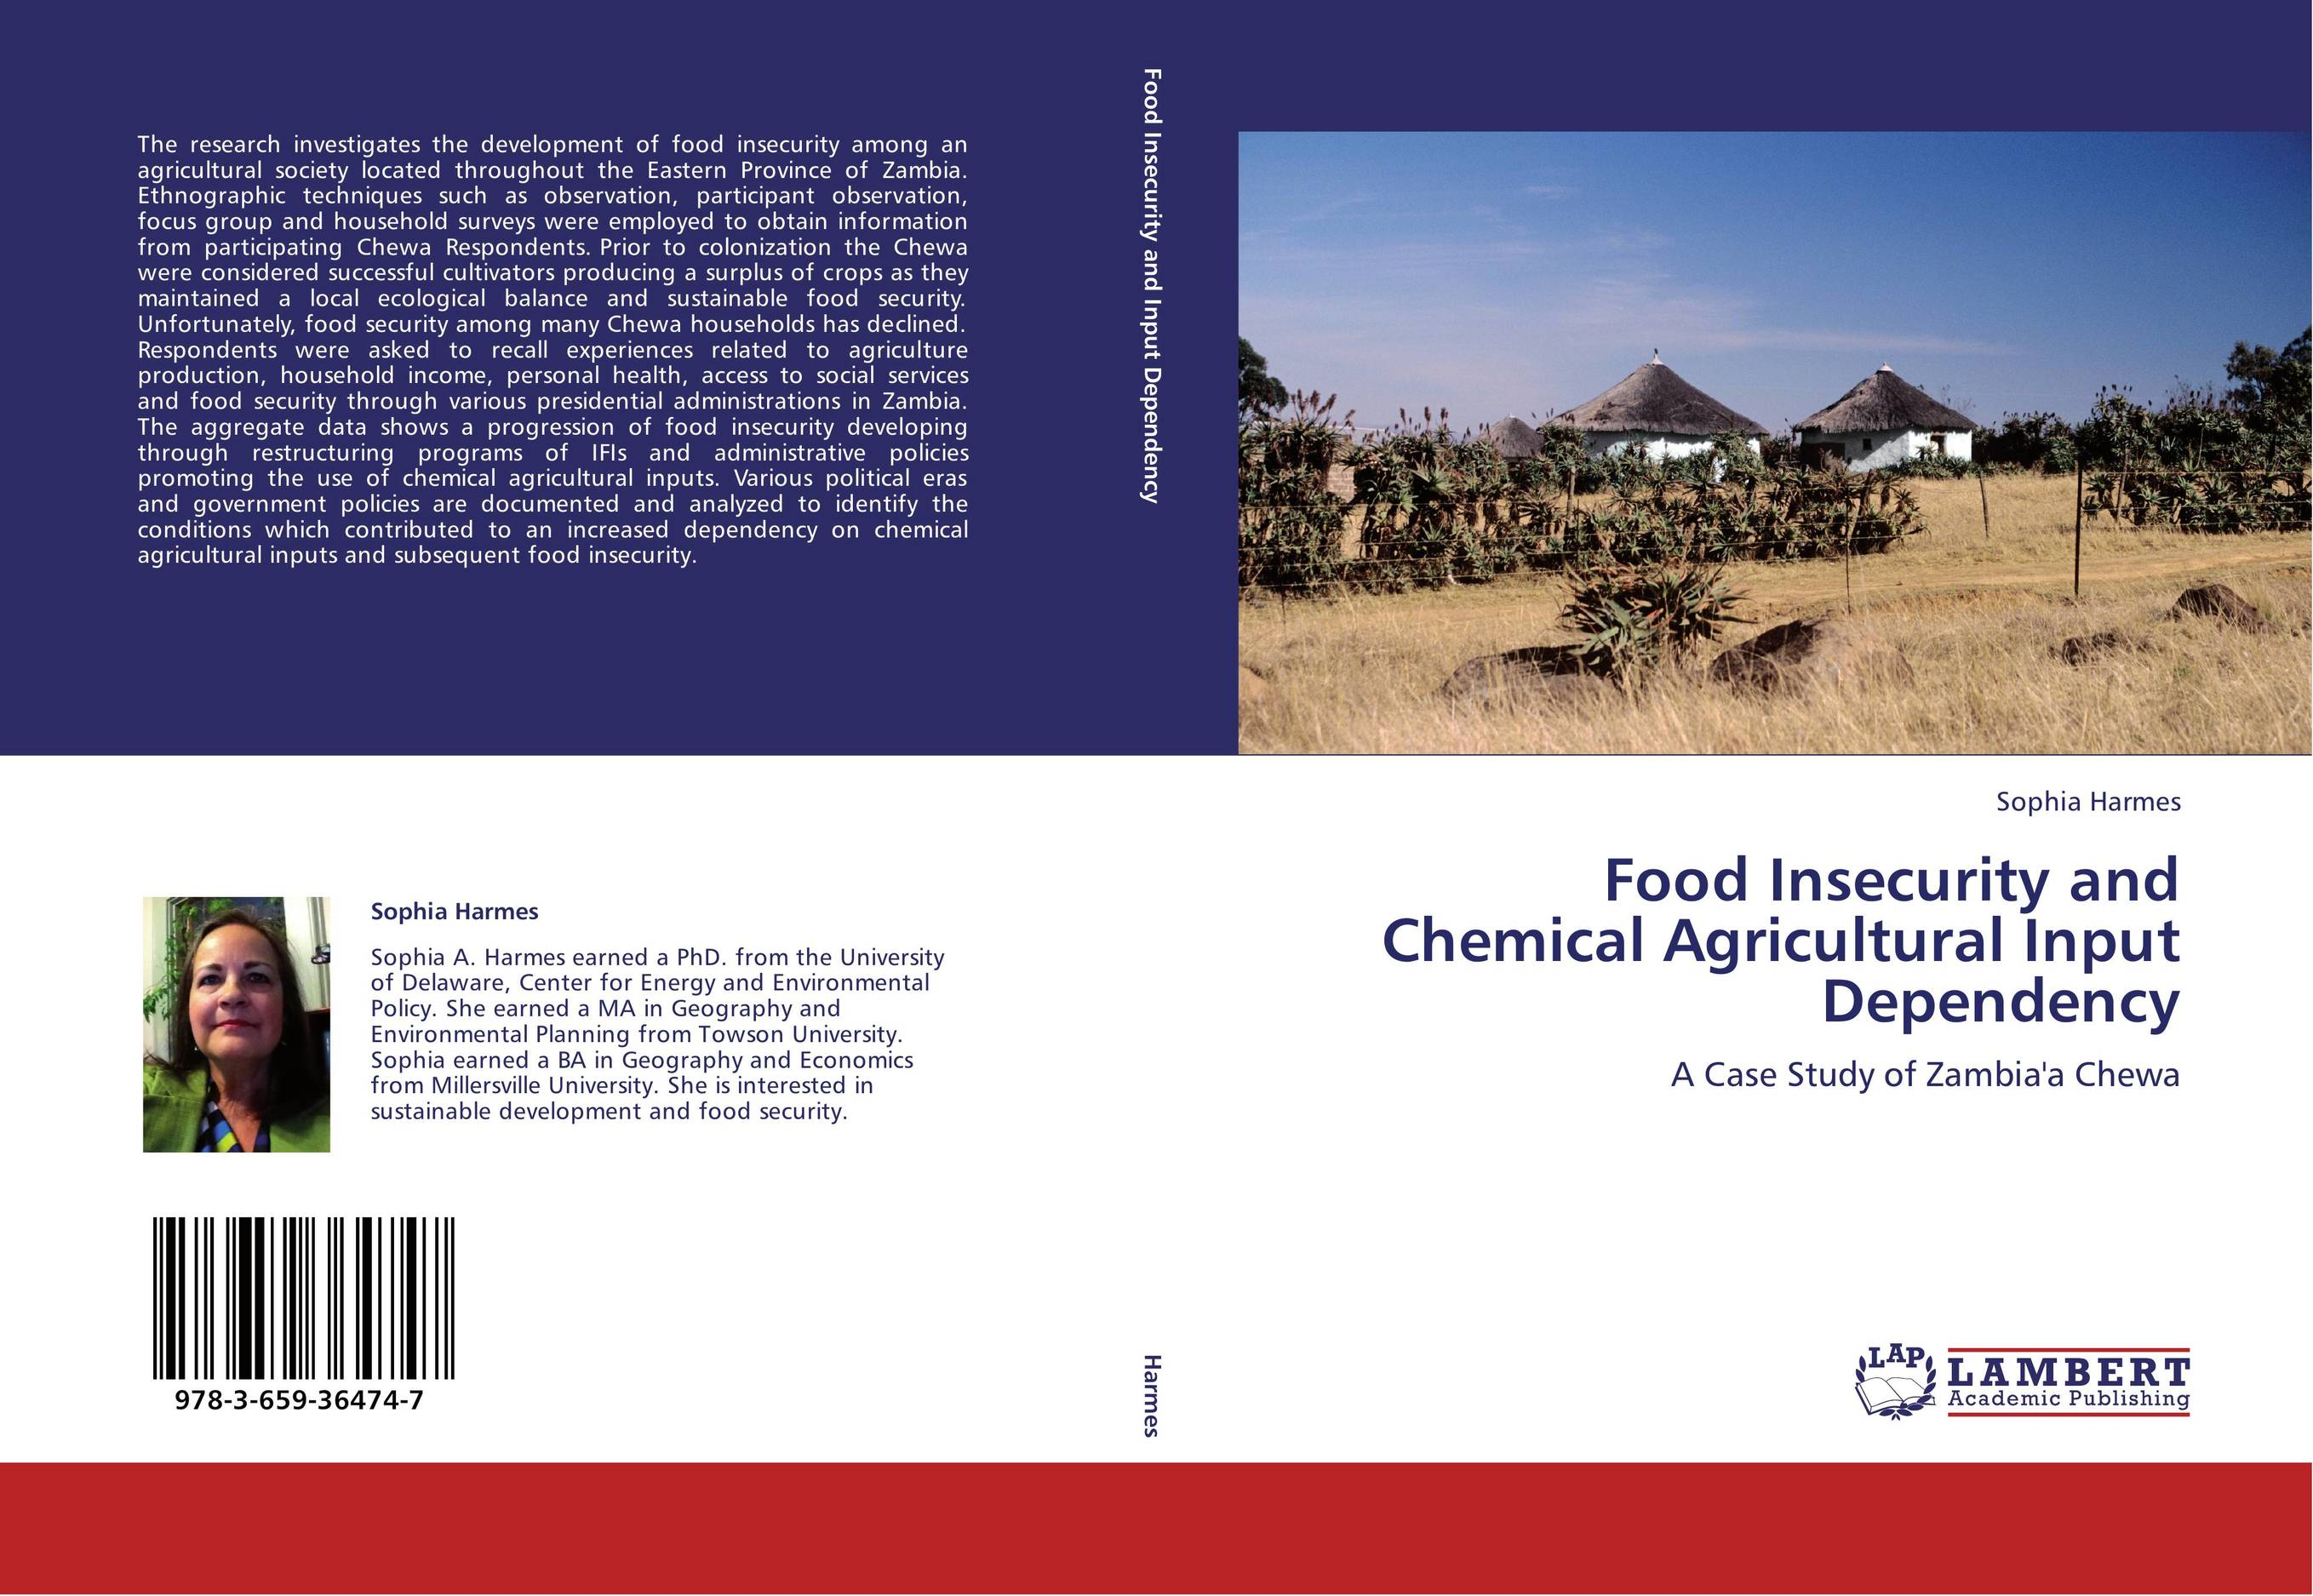 essay on chemistry and agriculture One focus of the usgs toxic substances hydrology (toxics) program is to investigate the occurrence and fate of agricultural chemicals in the environment from pesticides, fertilizers, veterinary medicines, and other sources a wide variety of toxics program investigations study the fate of.